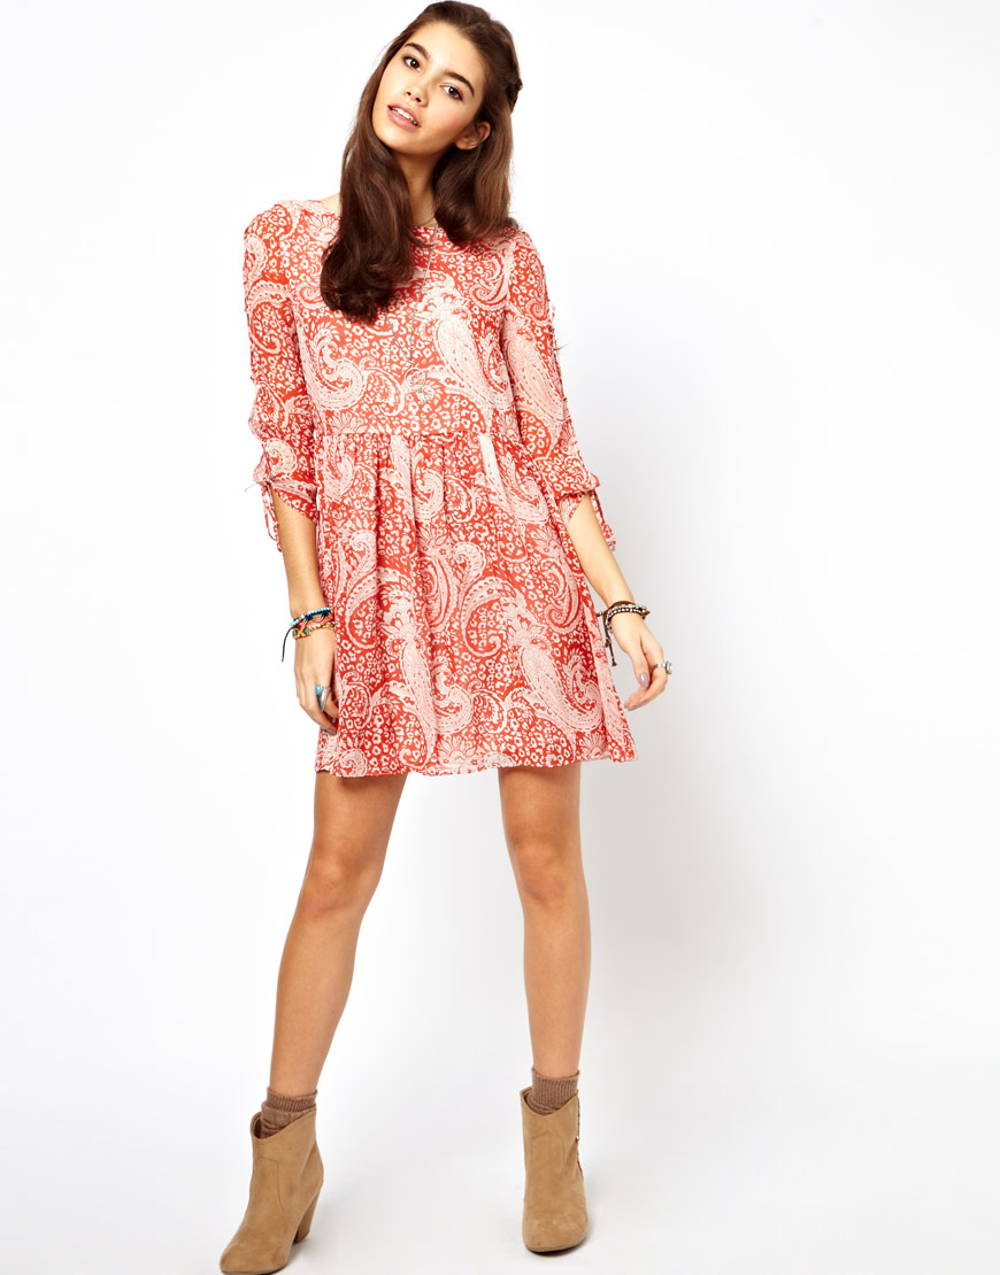 Asos paisley red dress